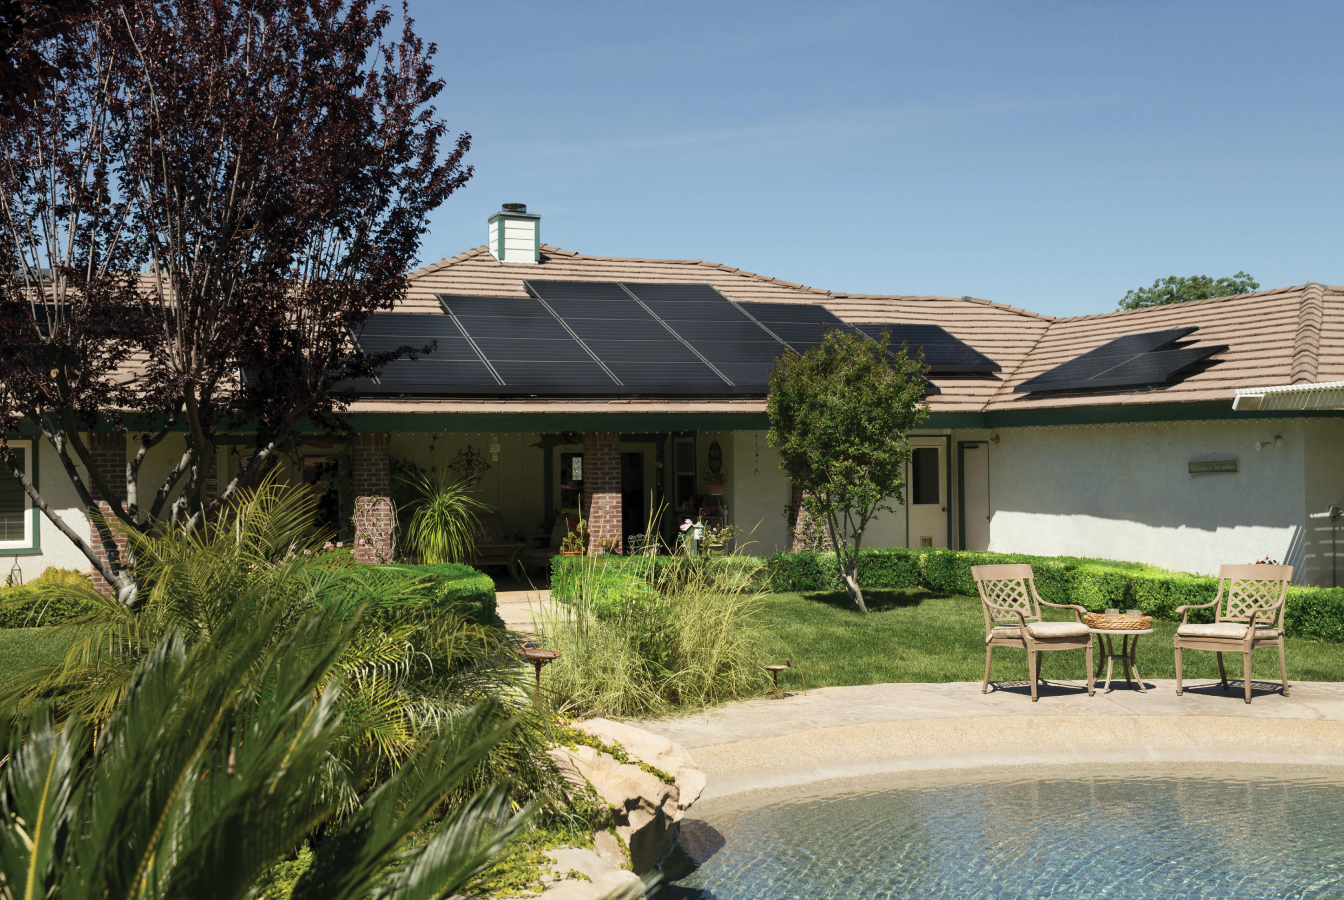 Sustainable home with solar panels on the roof